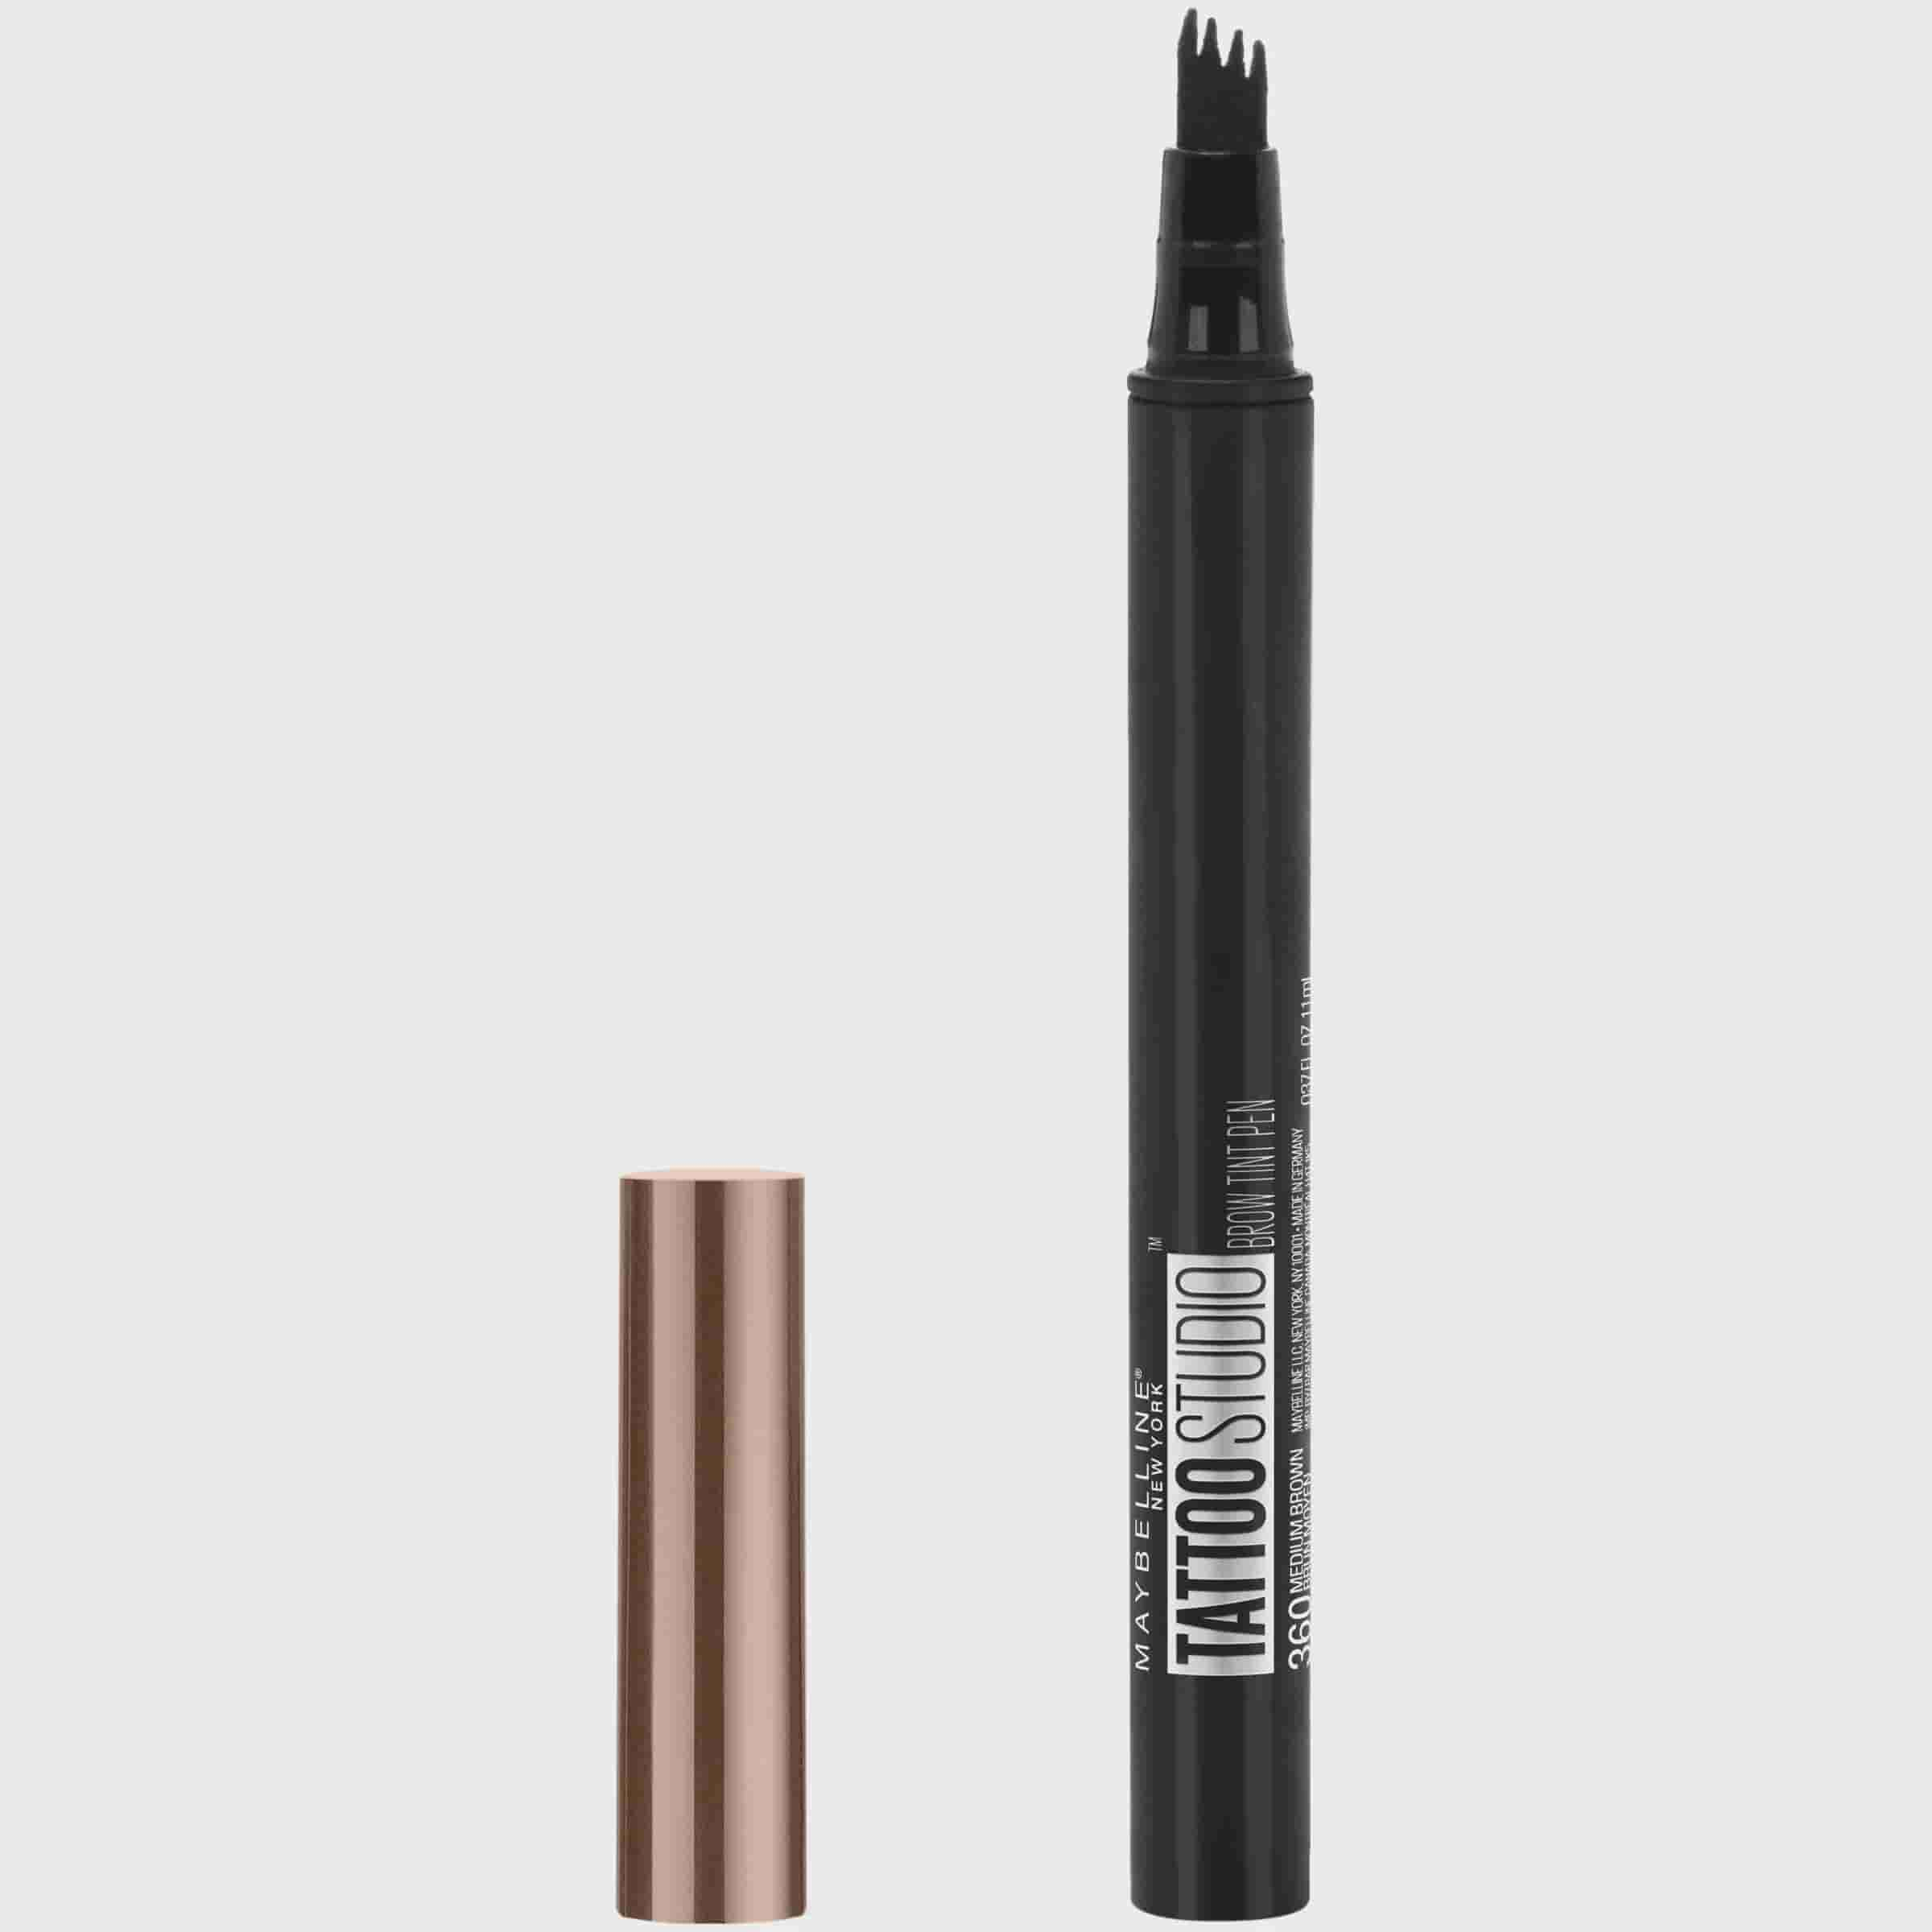 Maybelline Maybelline Tattoostudio Brow Tint Pen Makeup